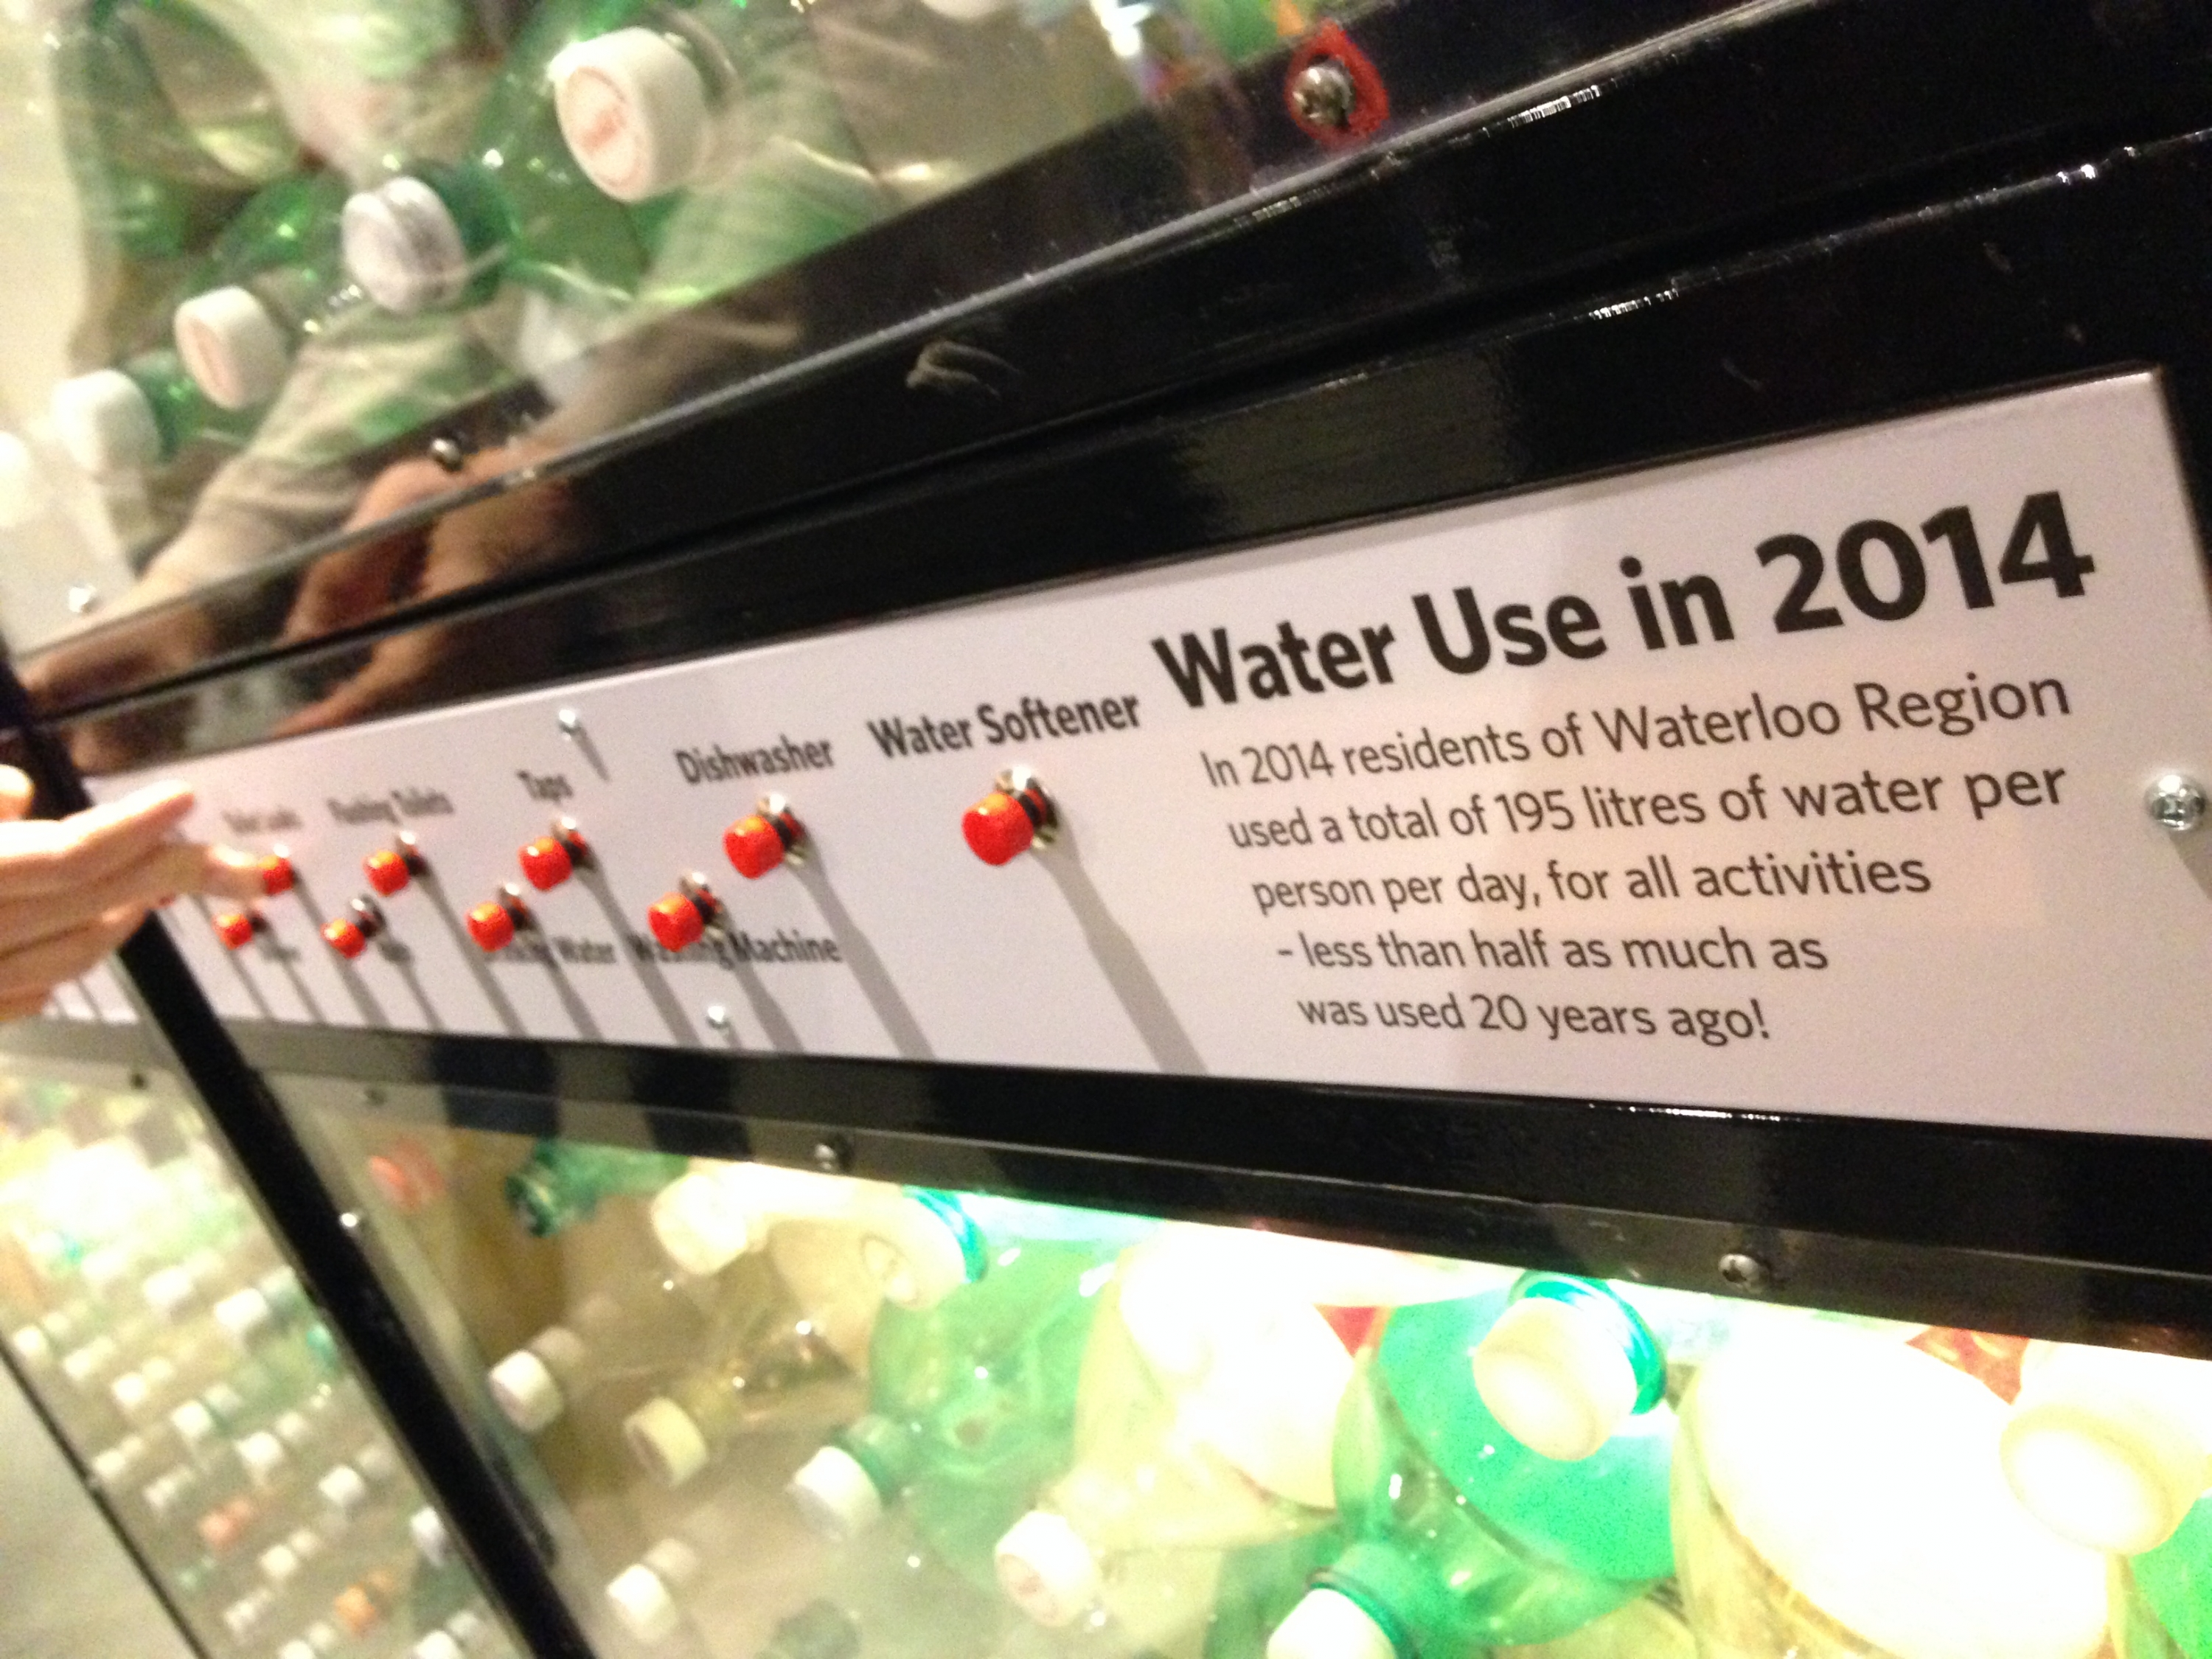 Pop bottle display showing 2014 water usage per person.